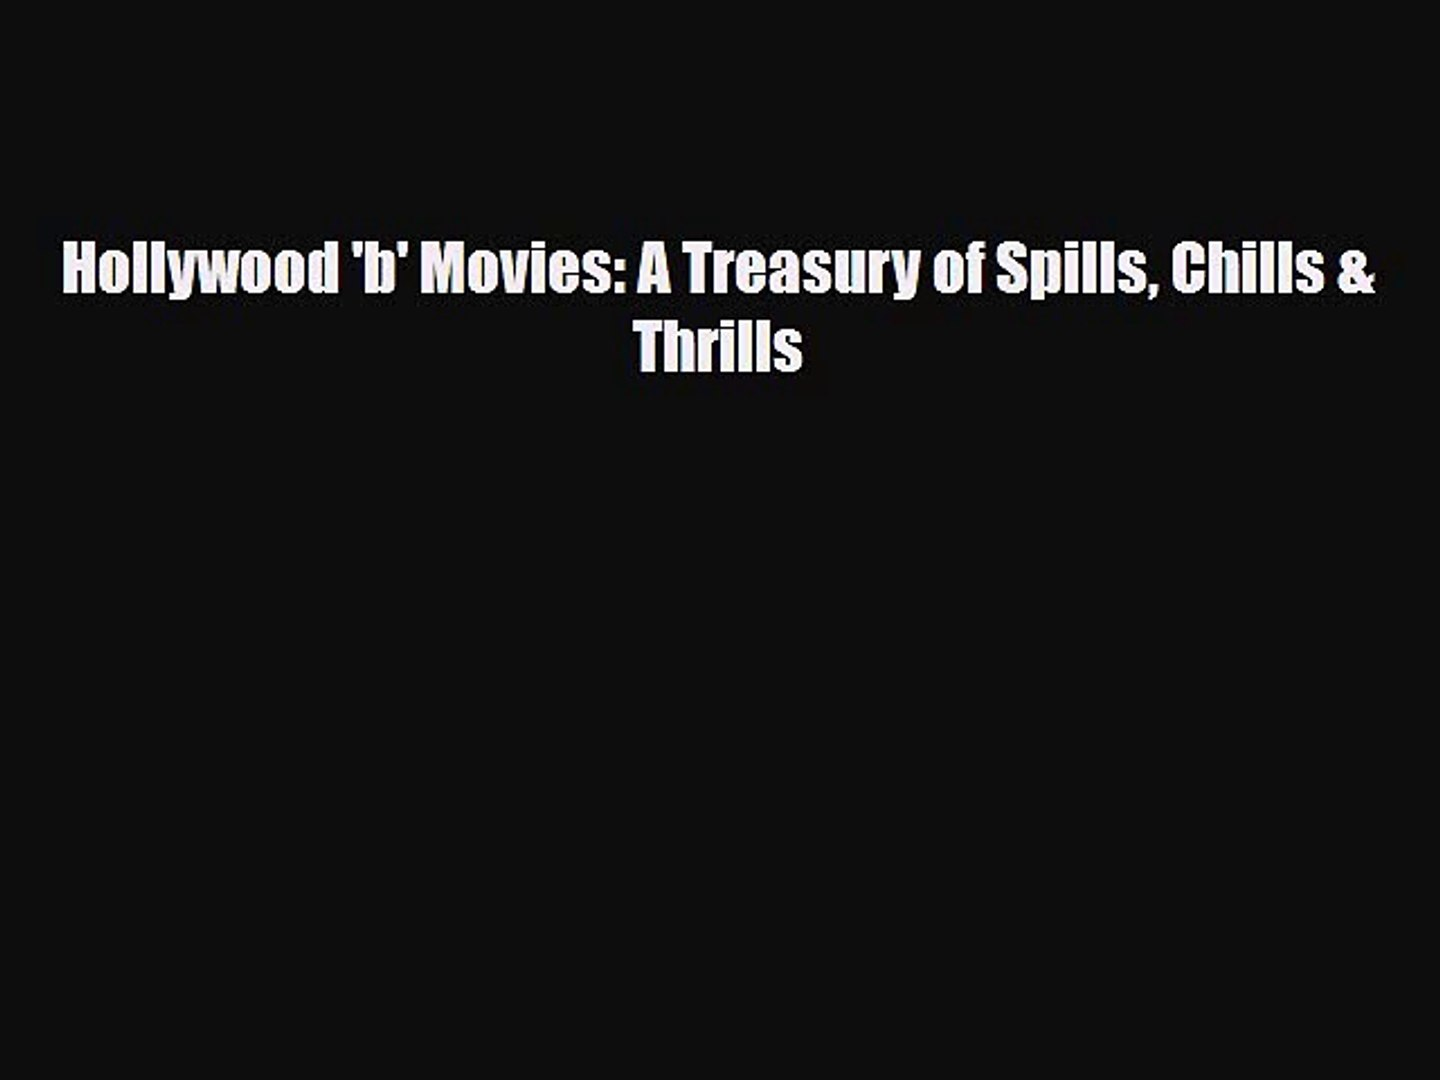 [PDF Download] Hollywood 'b' Movies: A Treasury of Spills Chills & Thrills [Download]